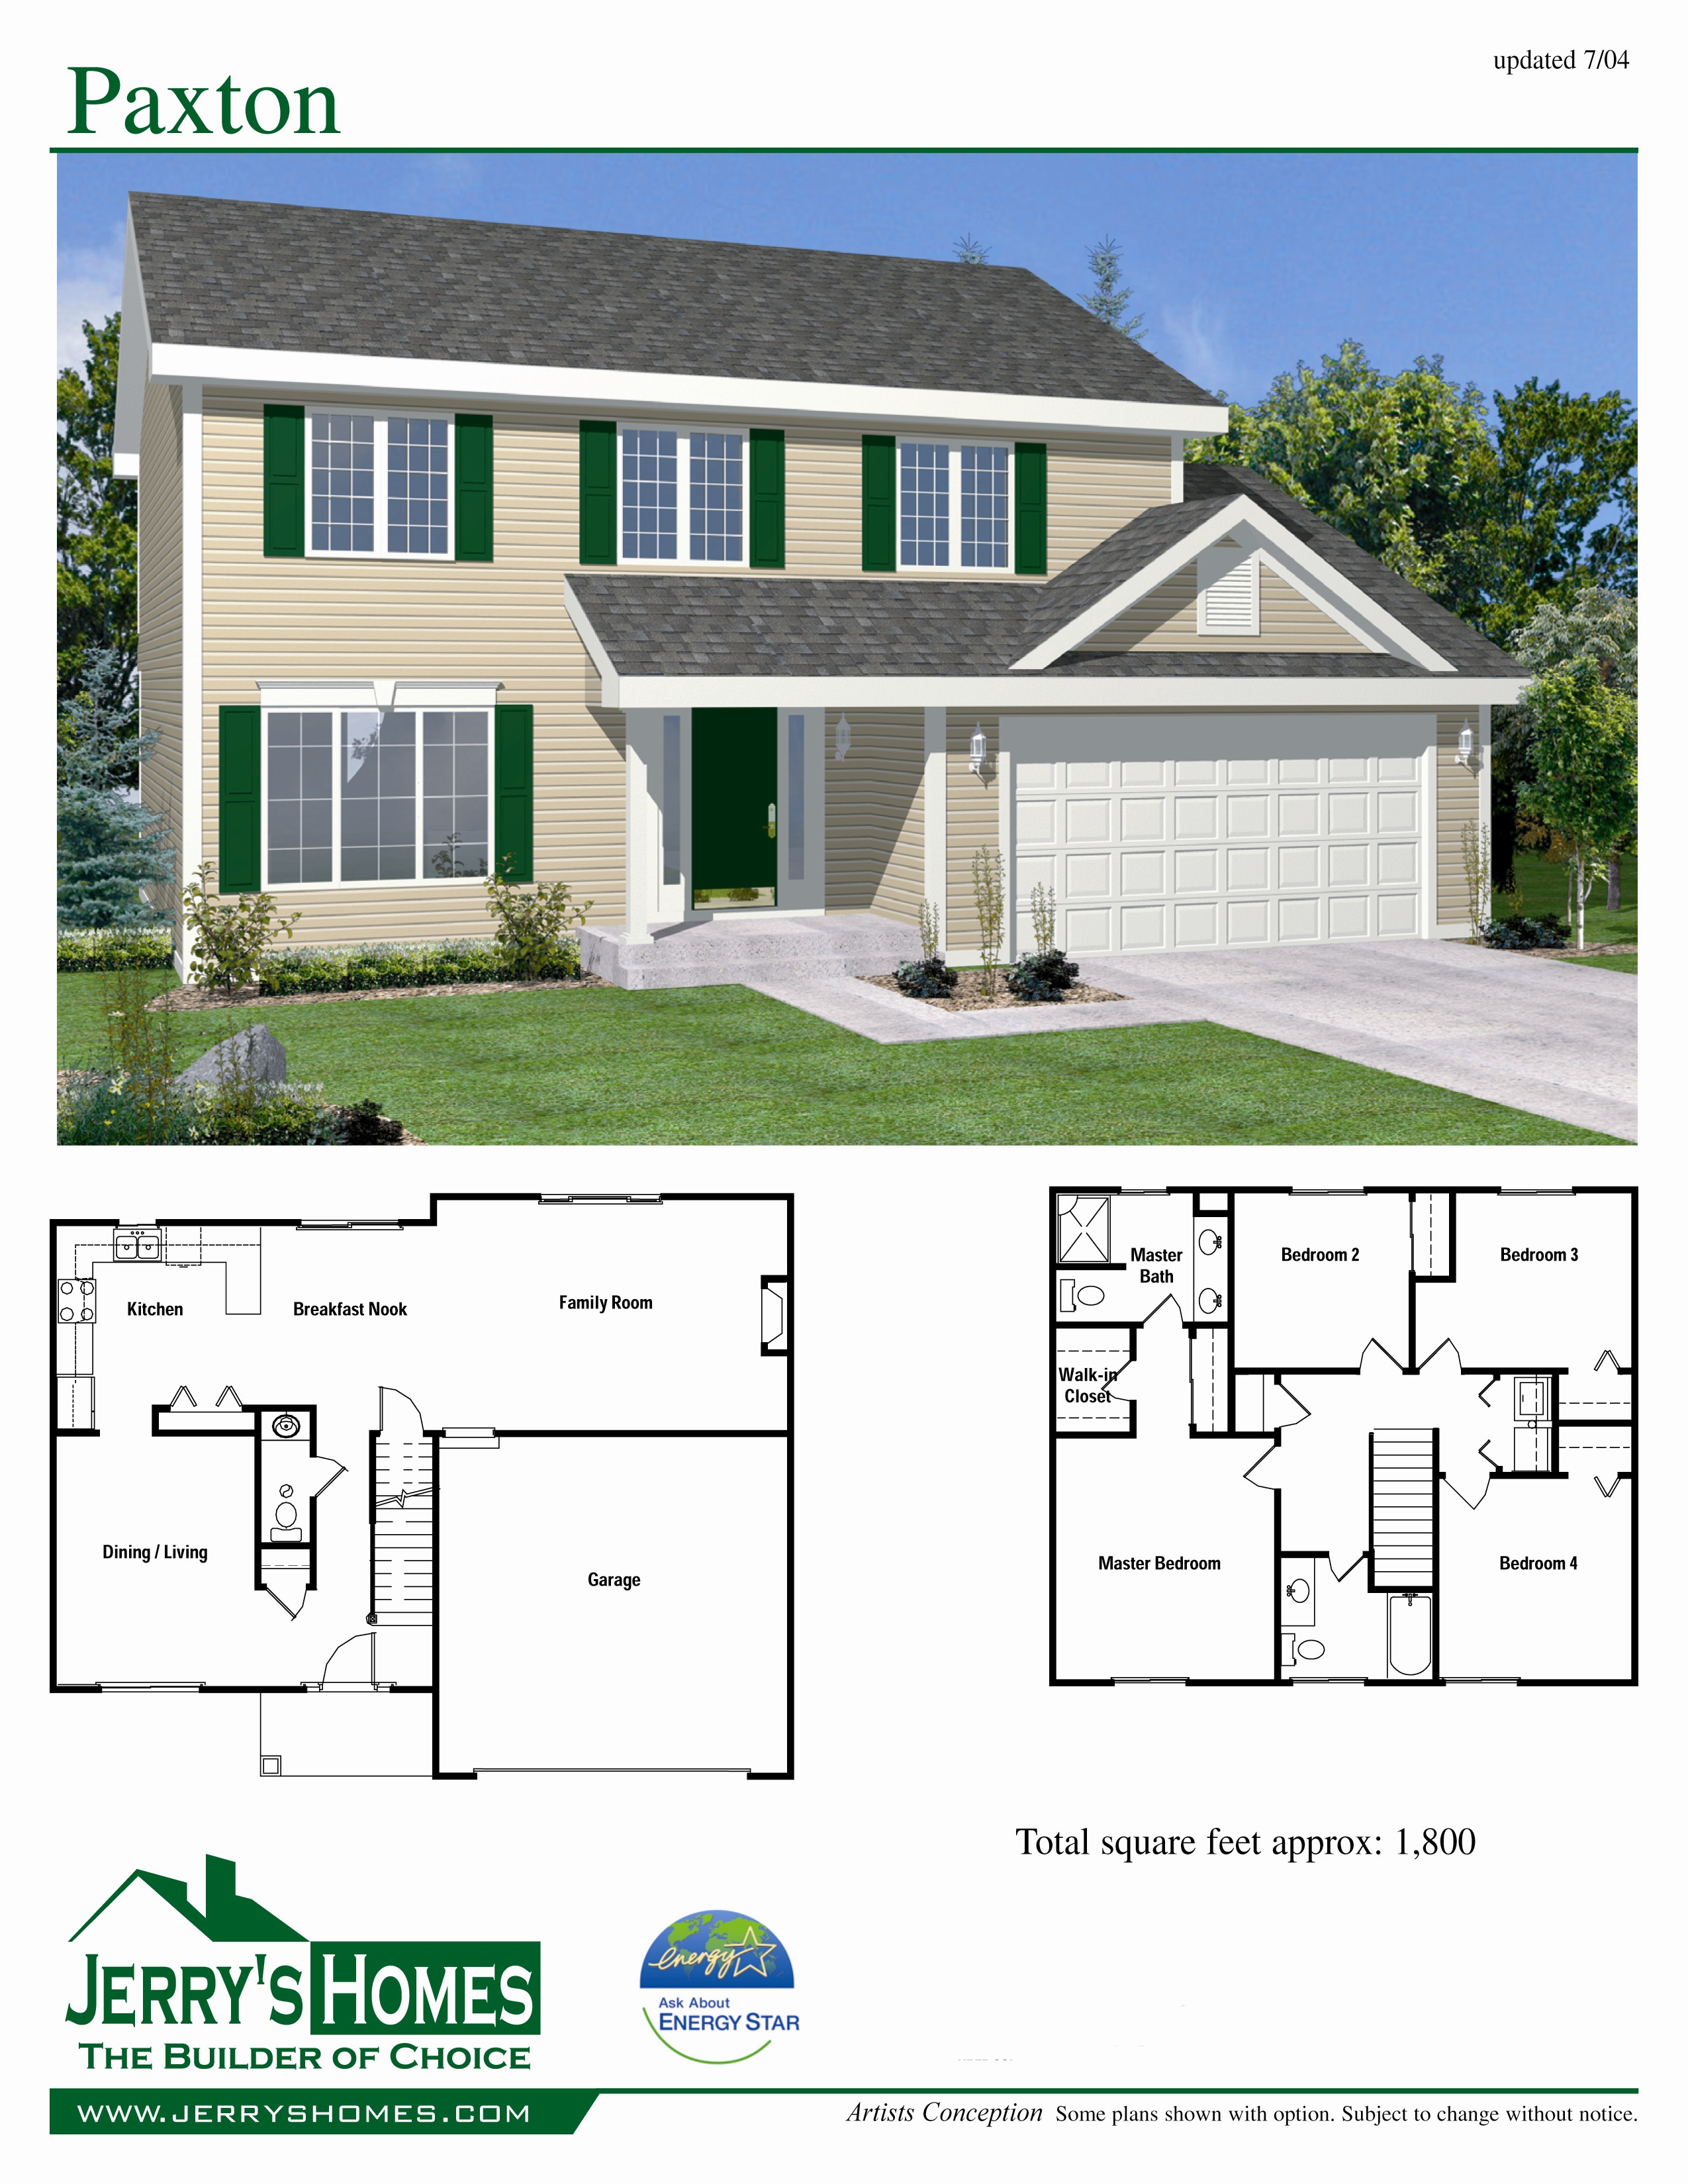 2 Bedroom Cottage House Plans Beautiful Two Bedroom Bath House Plans at Real Estate Simple Plan Tiny